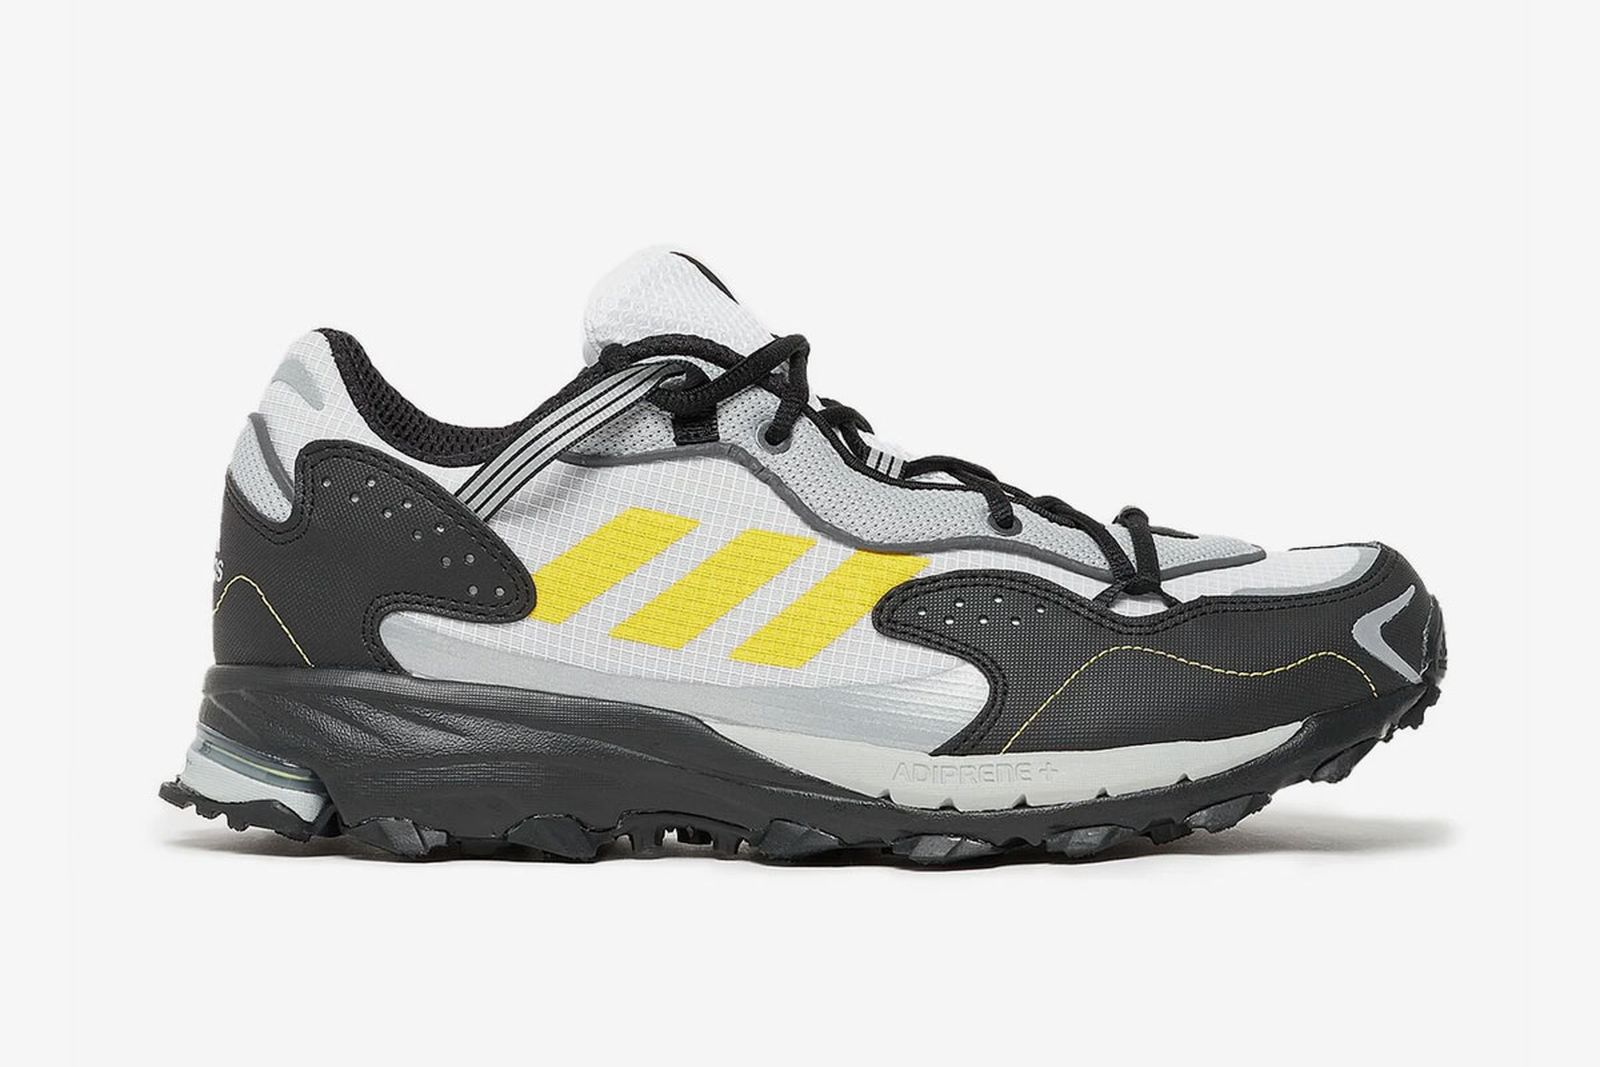 adidas Response Hoverturf in white and yellow